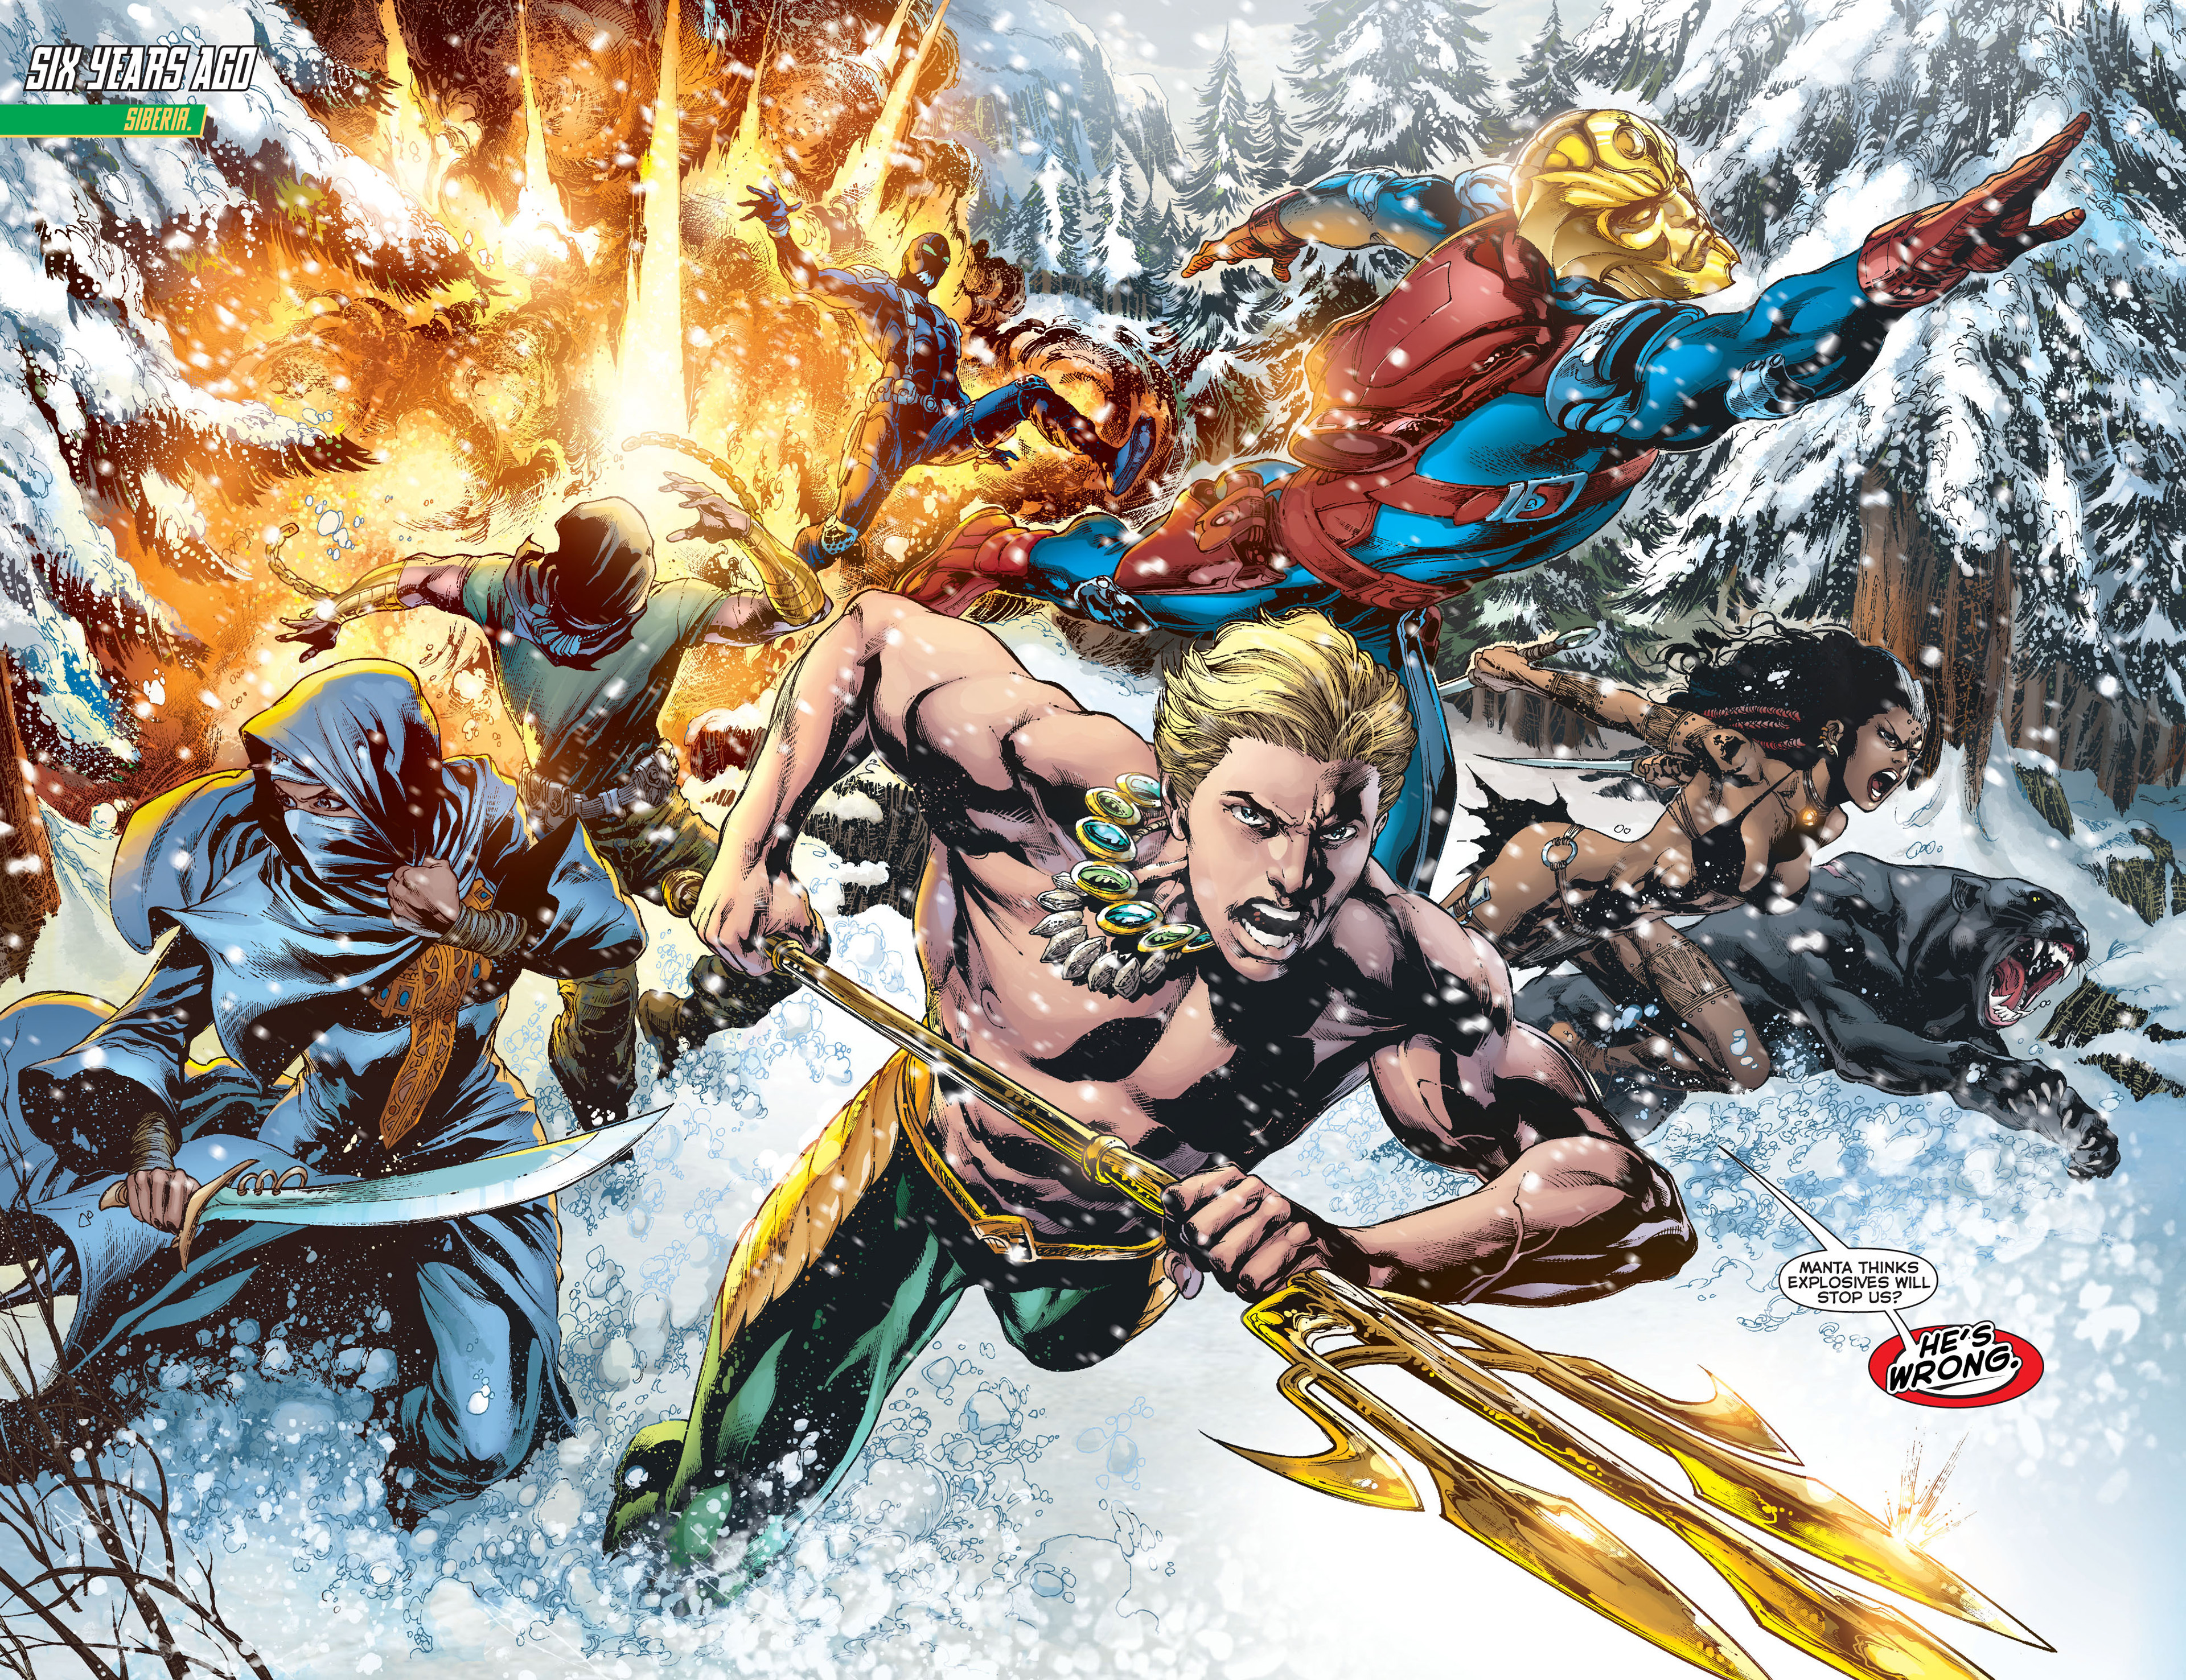 Aquaman The Others review